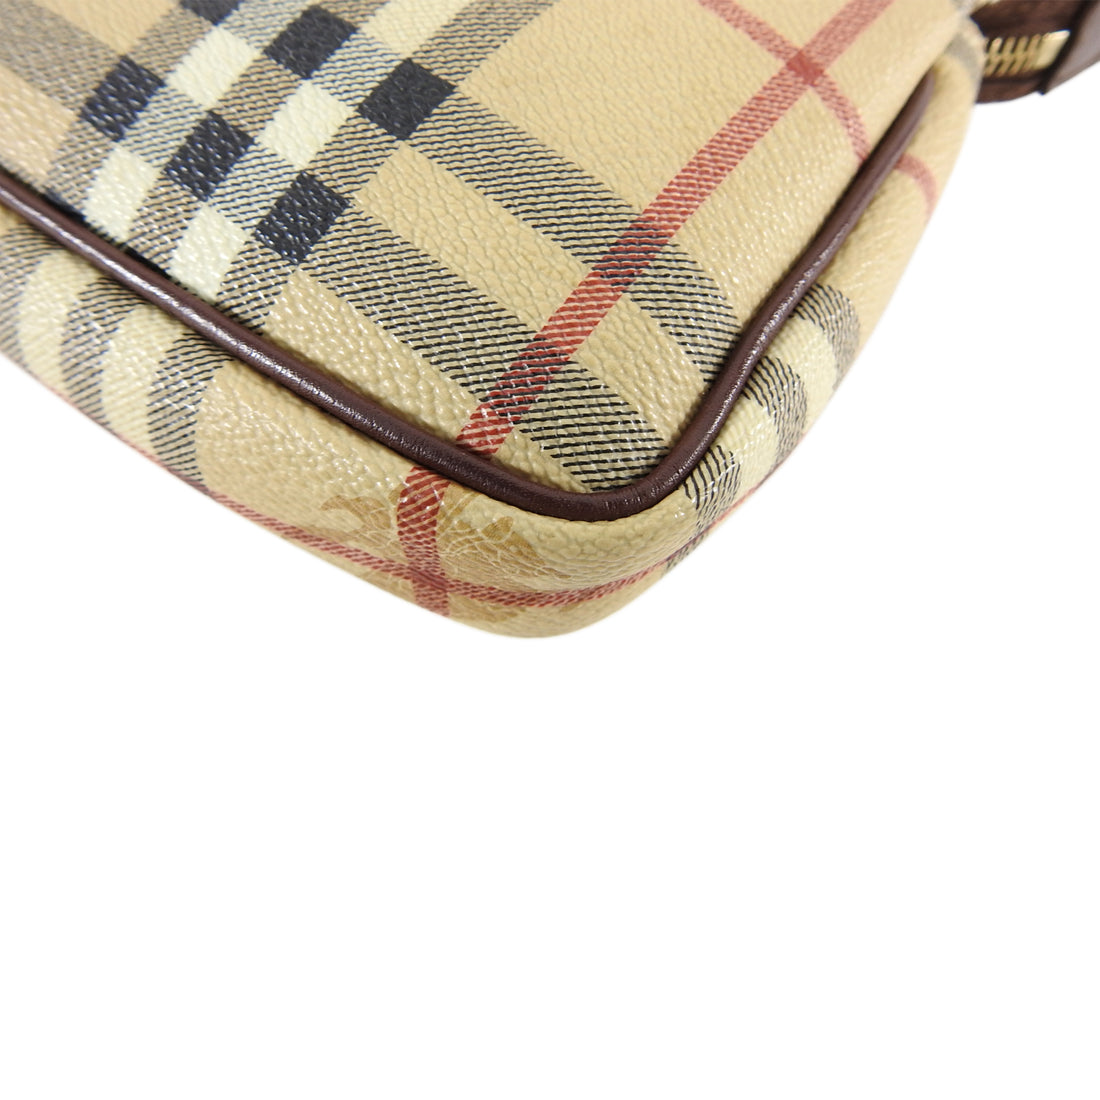 Burberry Nova Check Plaid Small Pochette Bag